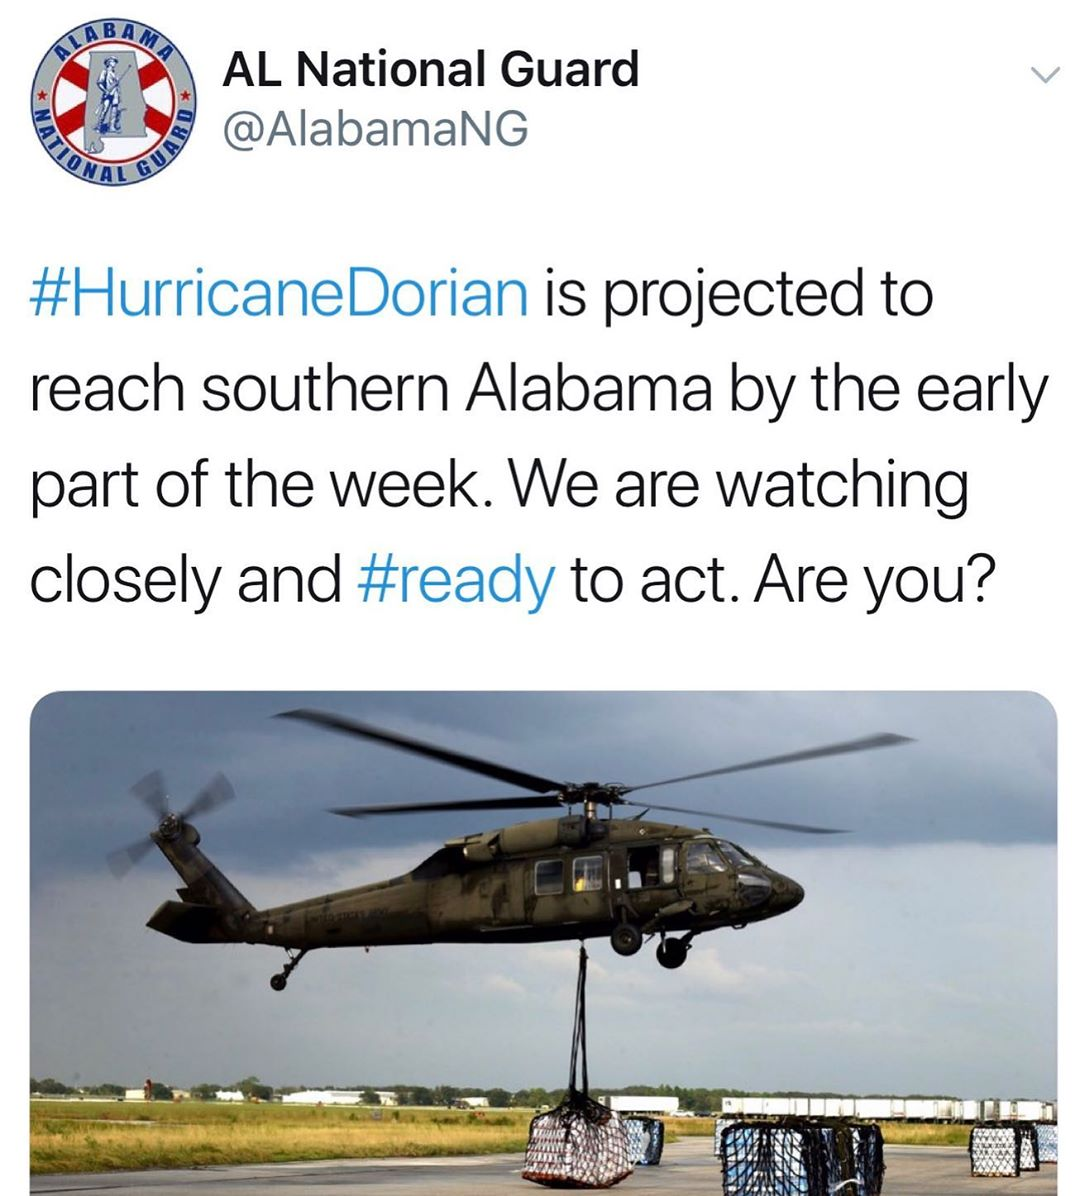 Donald J. Trump Instagram: I was with you all the way Alabama. The Fake News Media was not!...